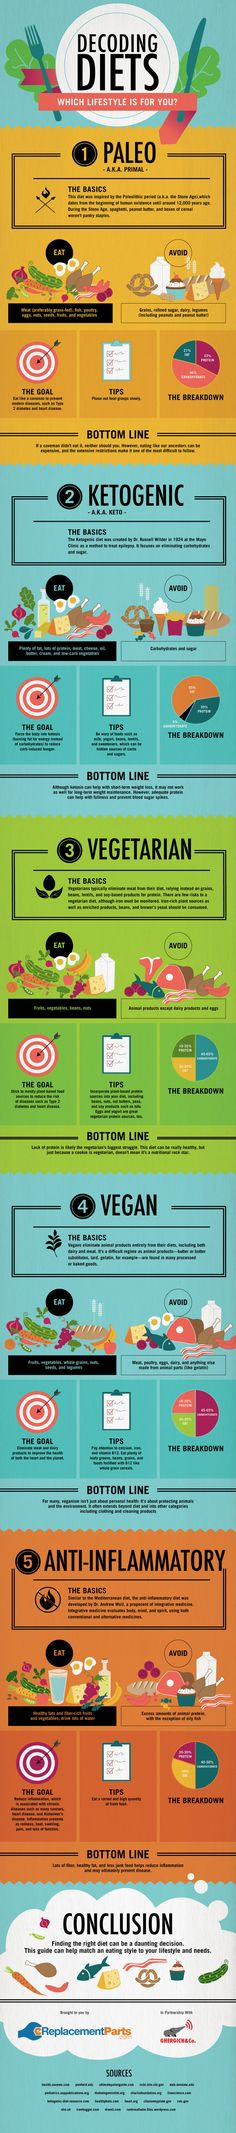 Decoding Diets: an easy to understand infographic.